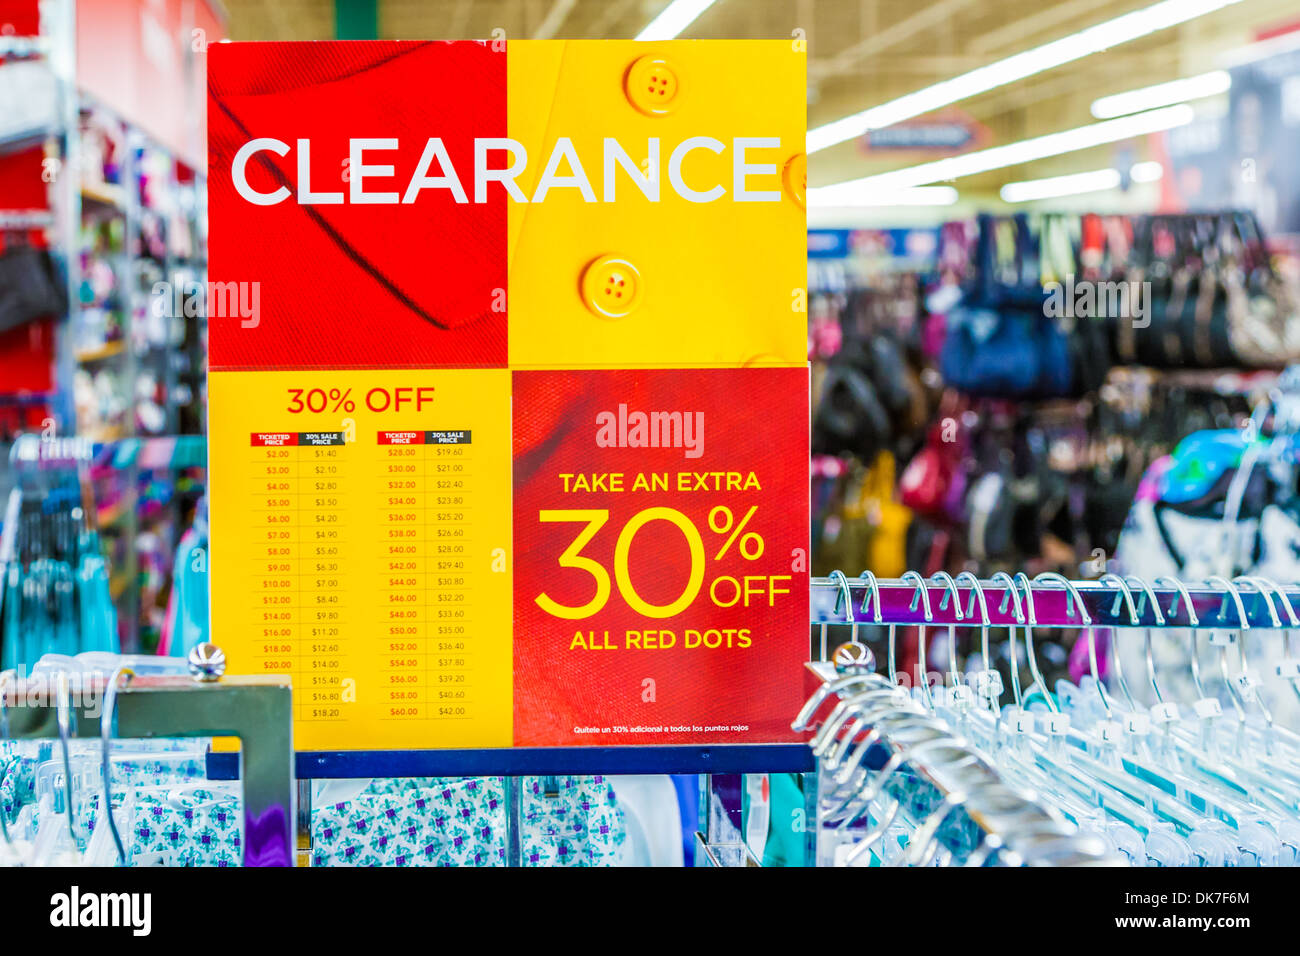 Sign indicates clearance sale discounts on clothing in retail clothing bargain store - Stock Image